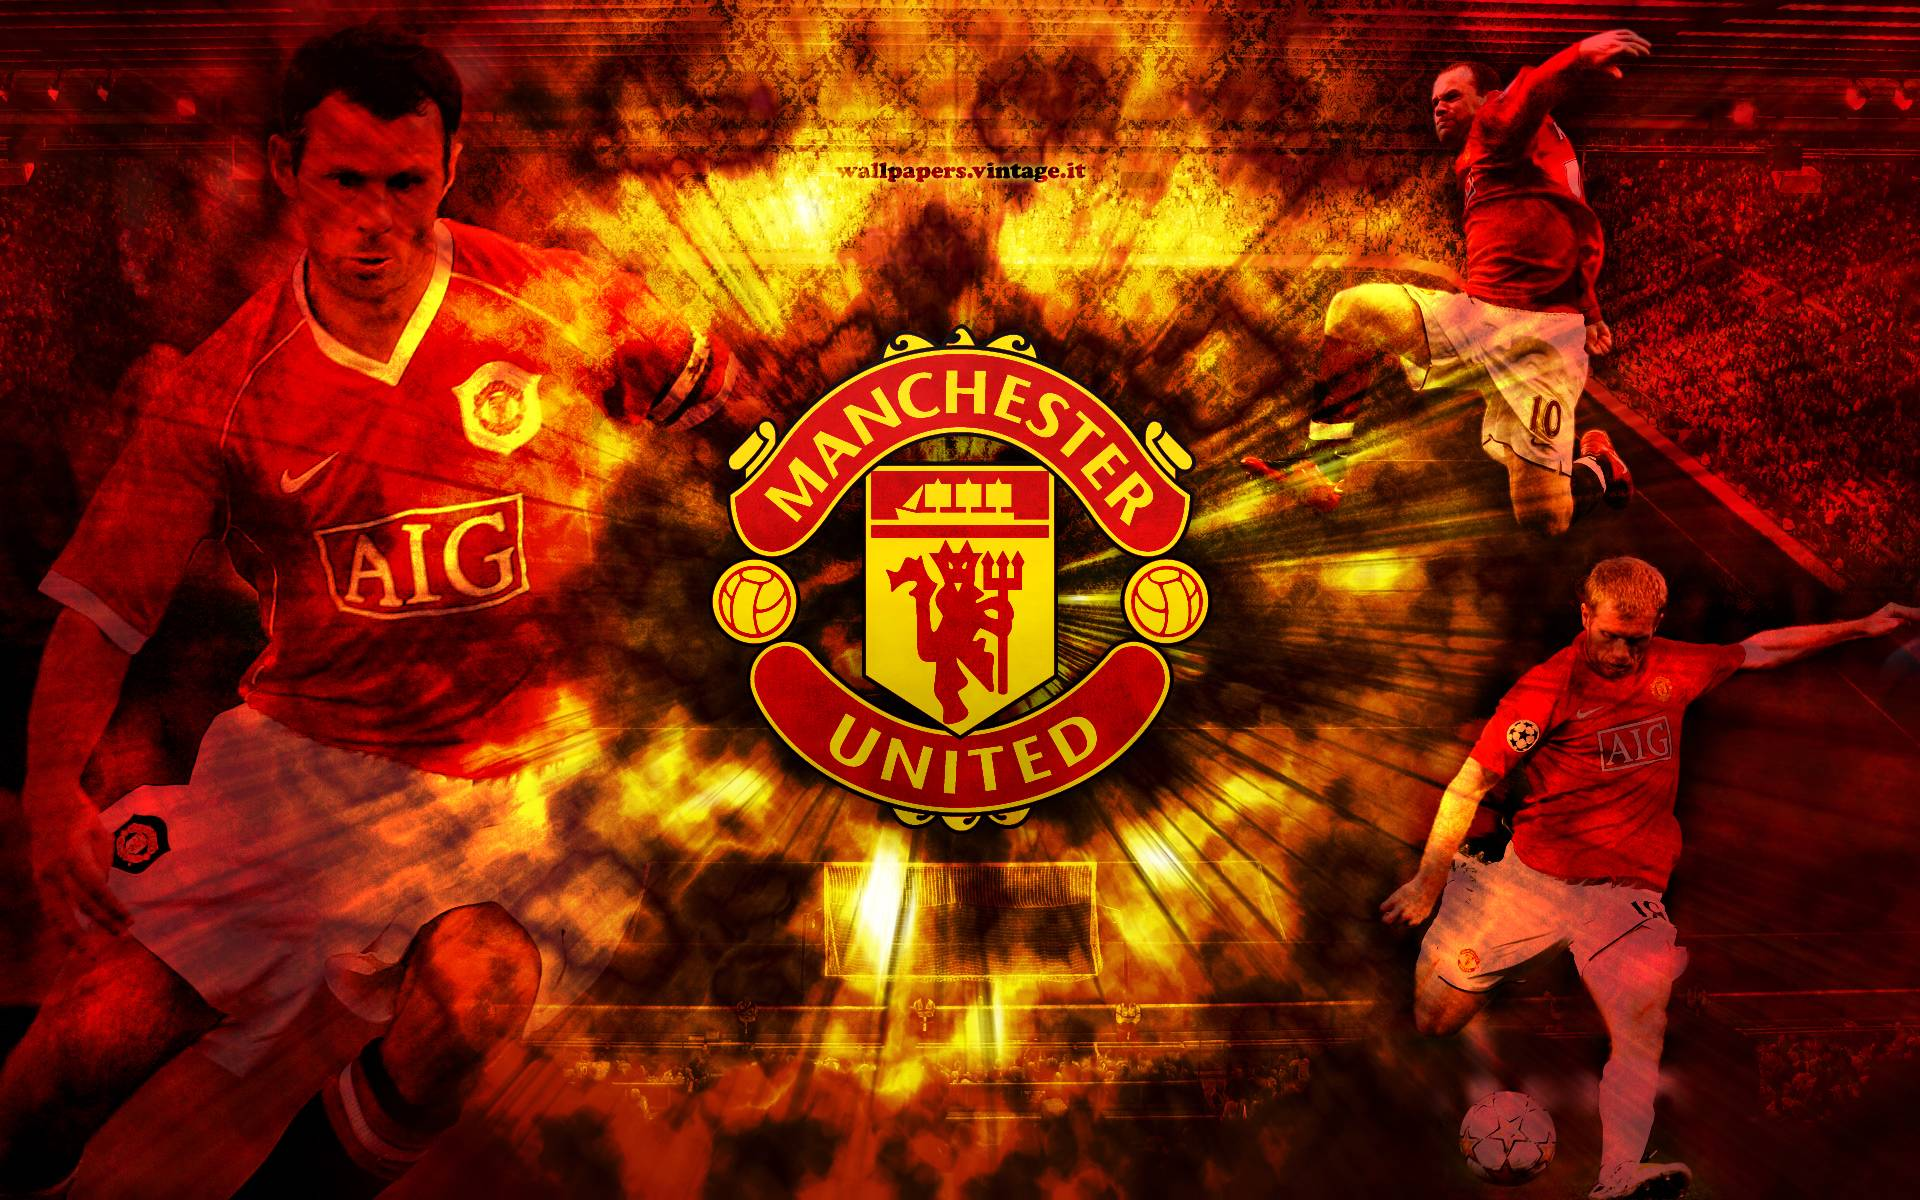 Manchester united logo wallpapers hd 2015 wallpaper cave - Cool man united wallpapers ...